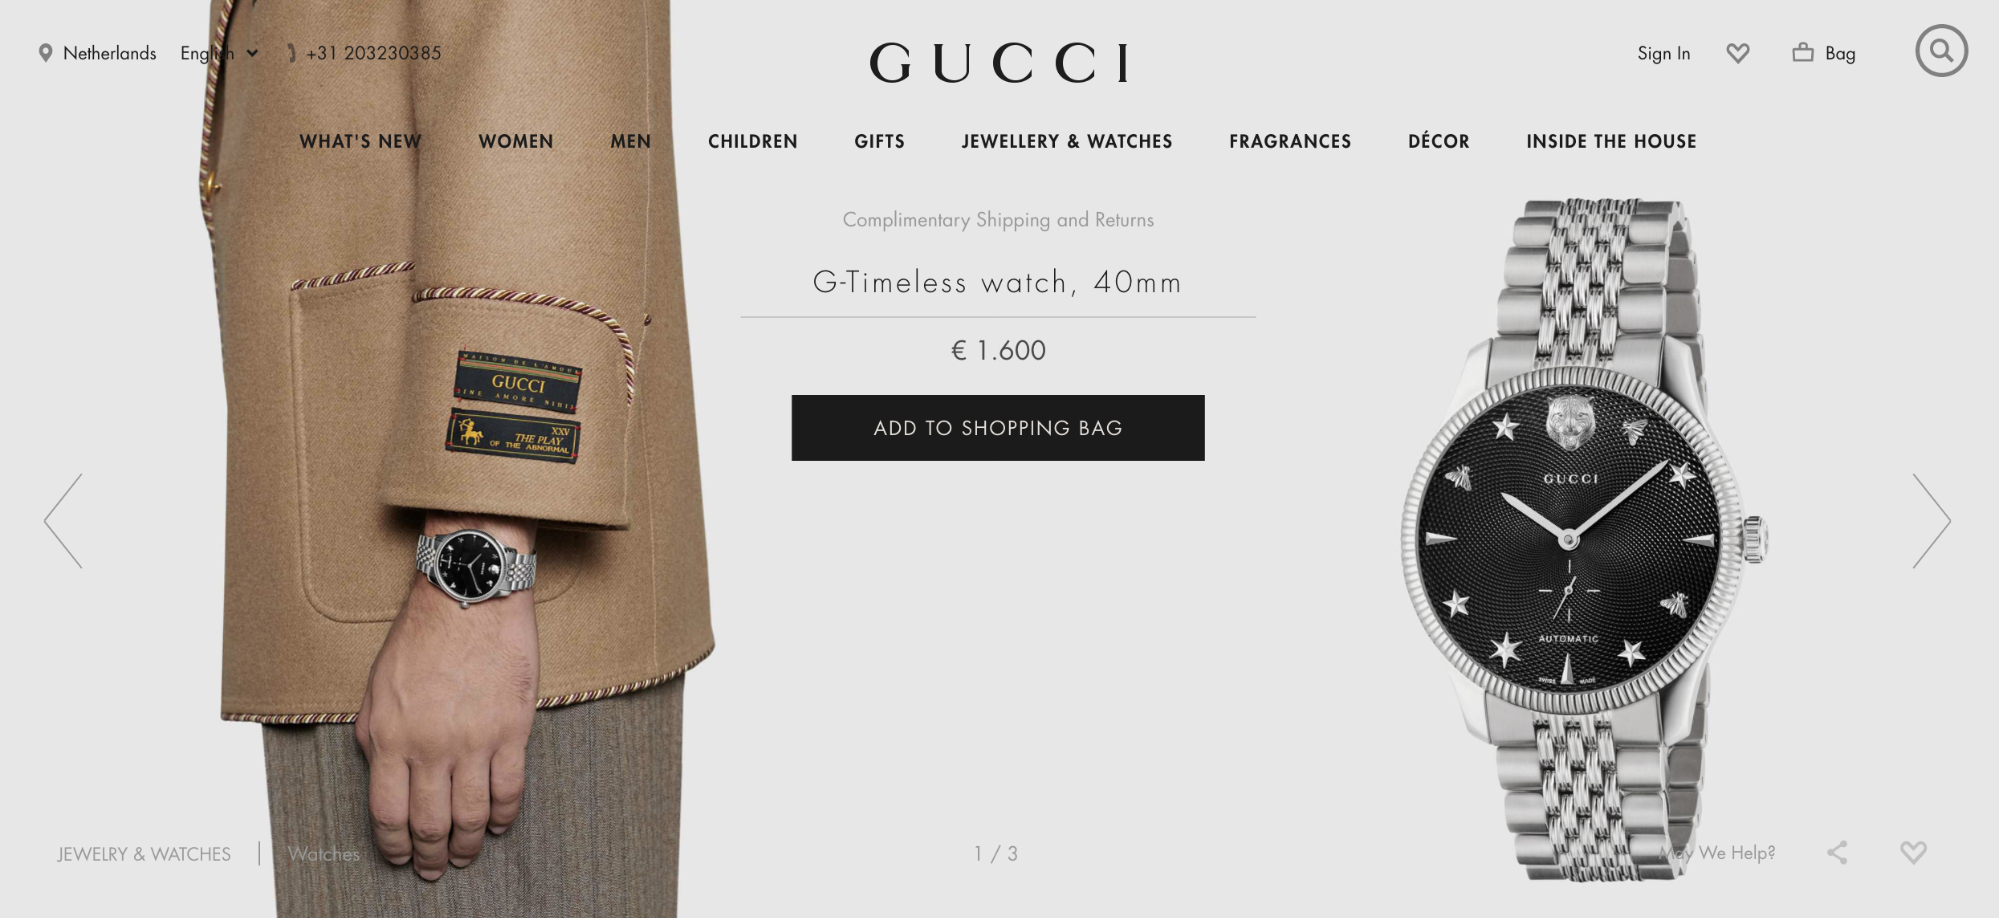 advertisement for a Gucci watch that costs 1,600 euros